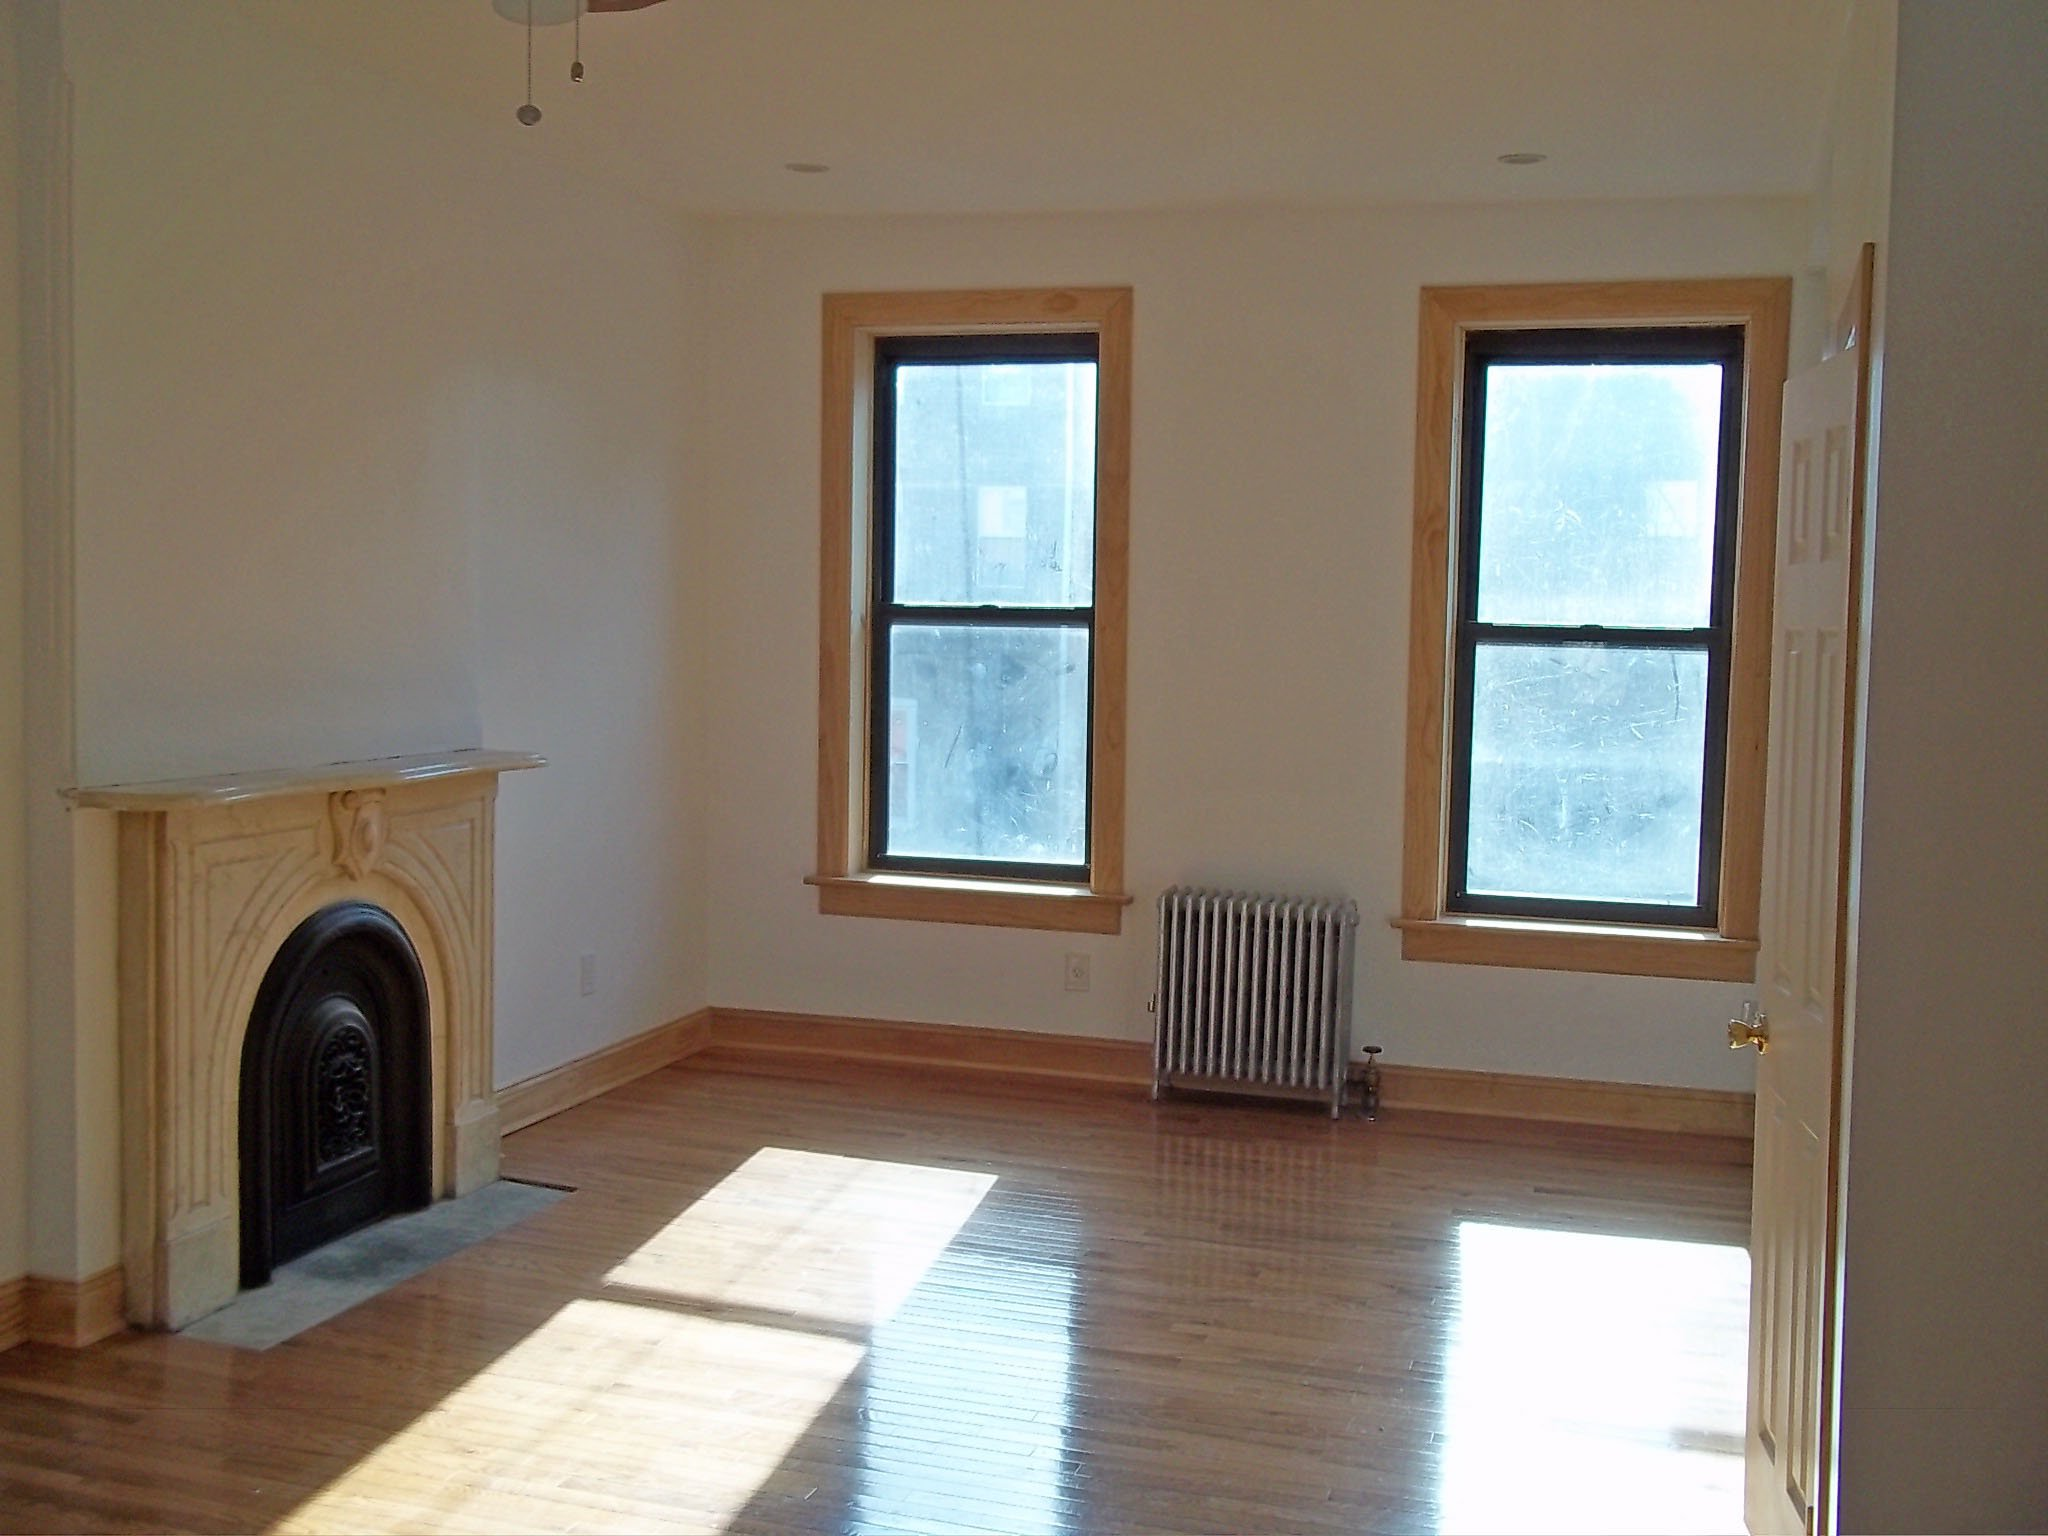 One Bedroom Apartment For Rent In The Bronx